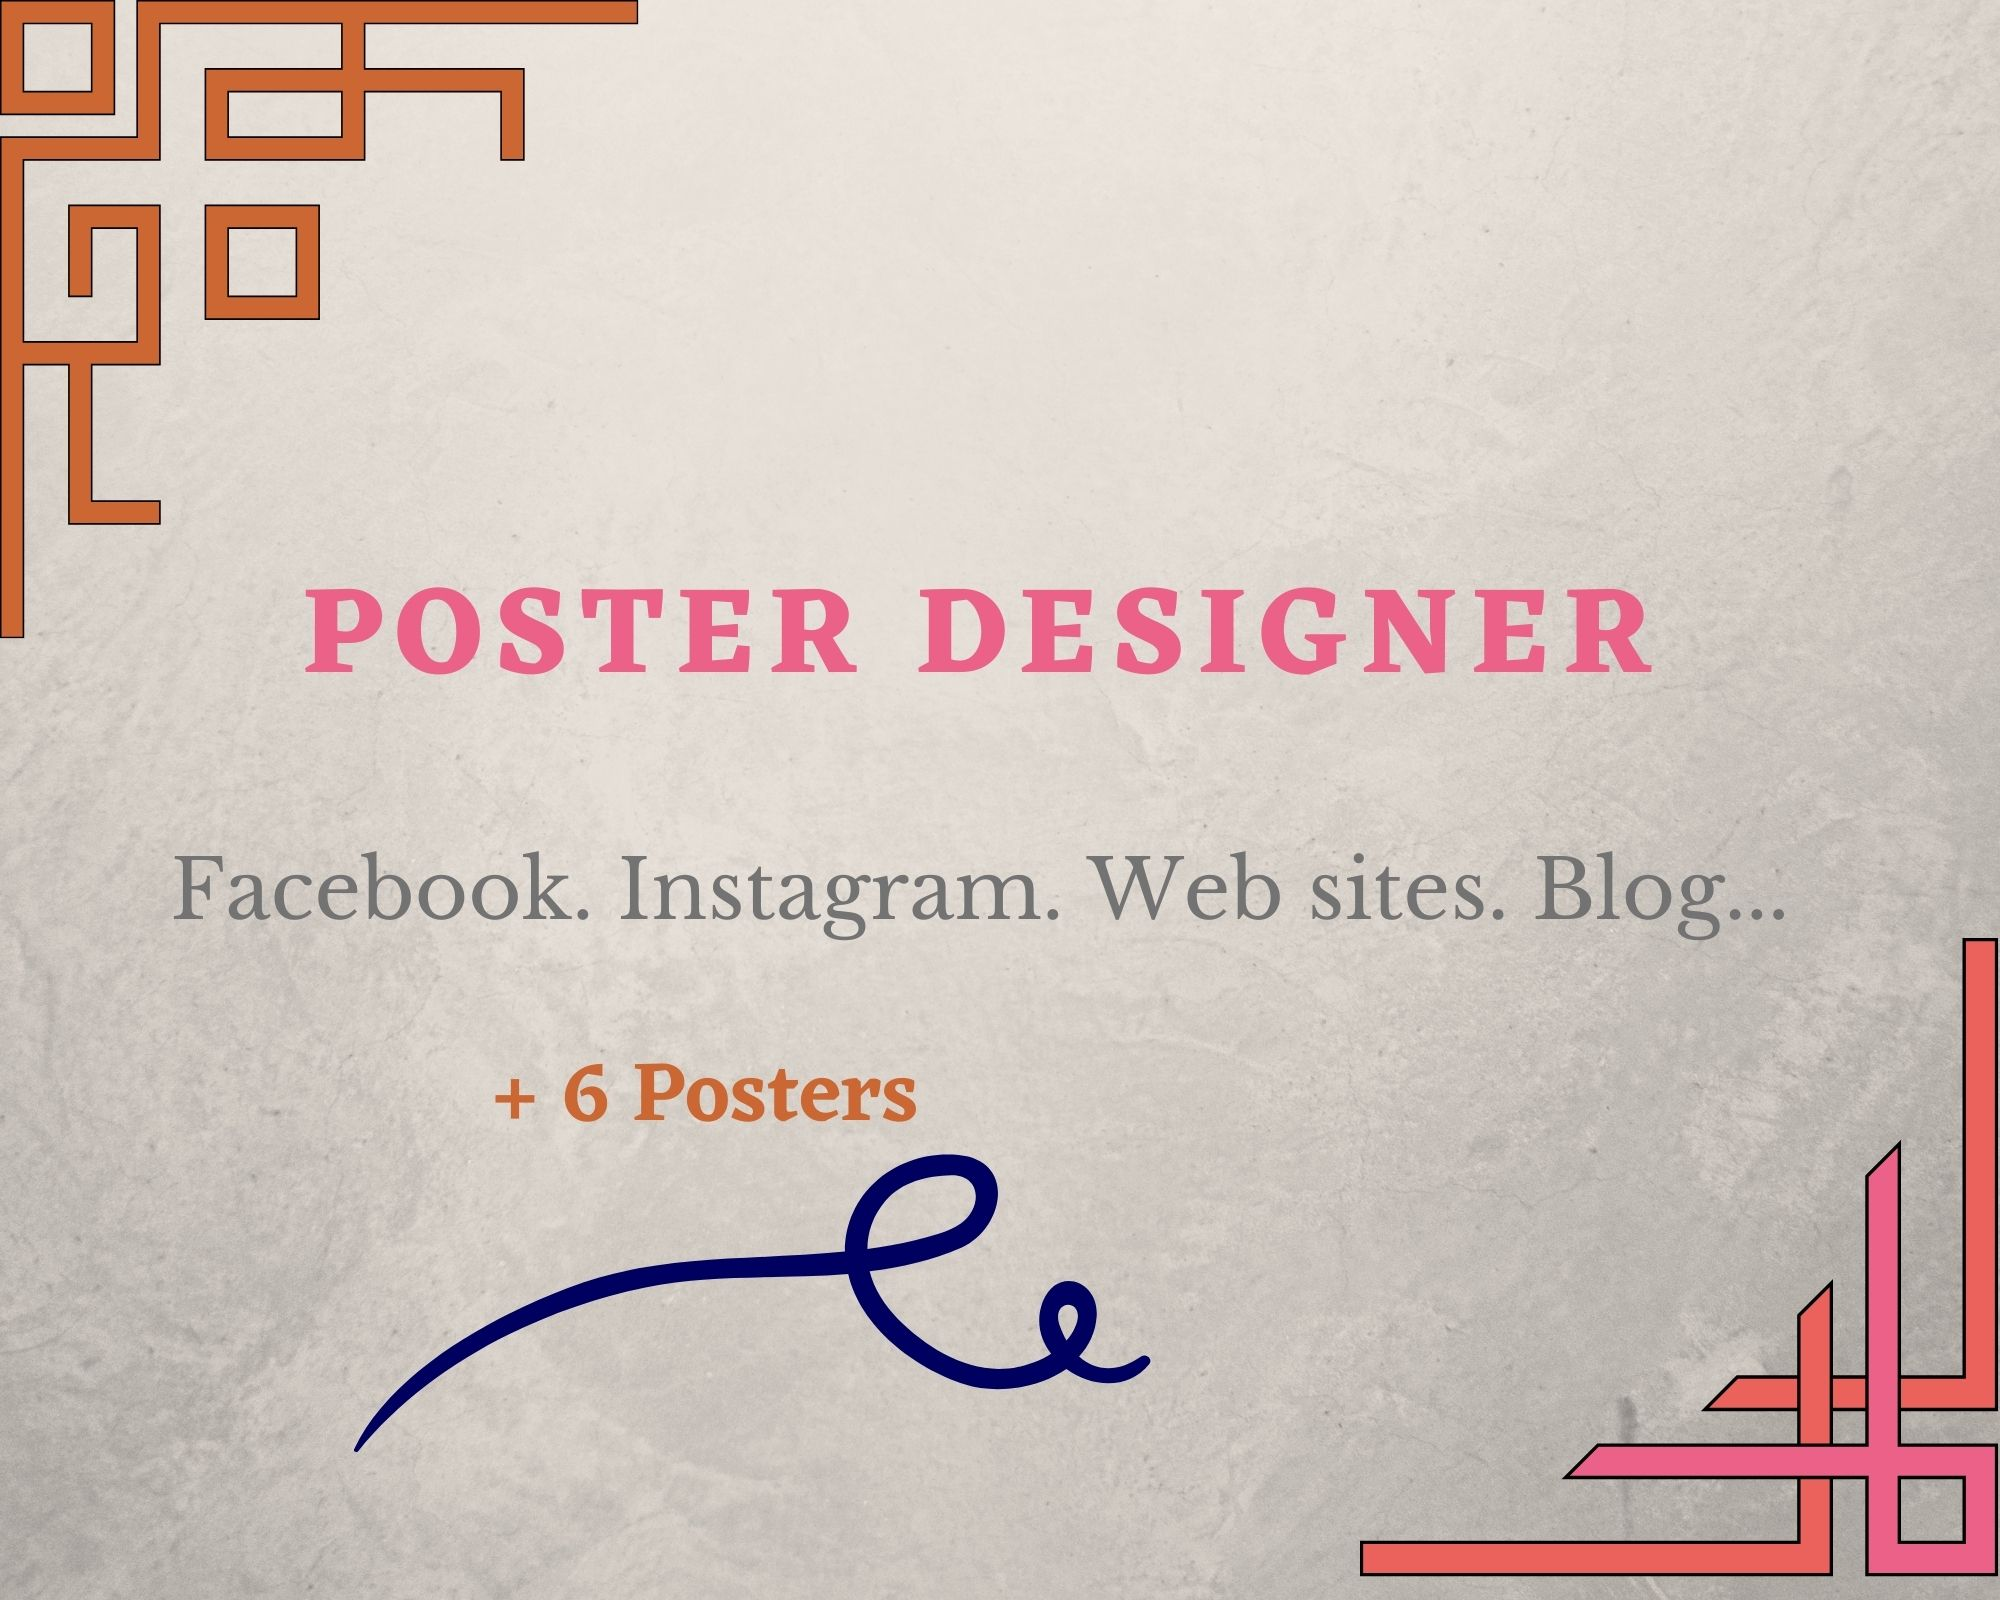 Professional Poster designer 6 posters for the Price of one